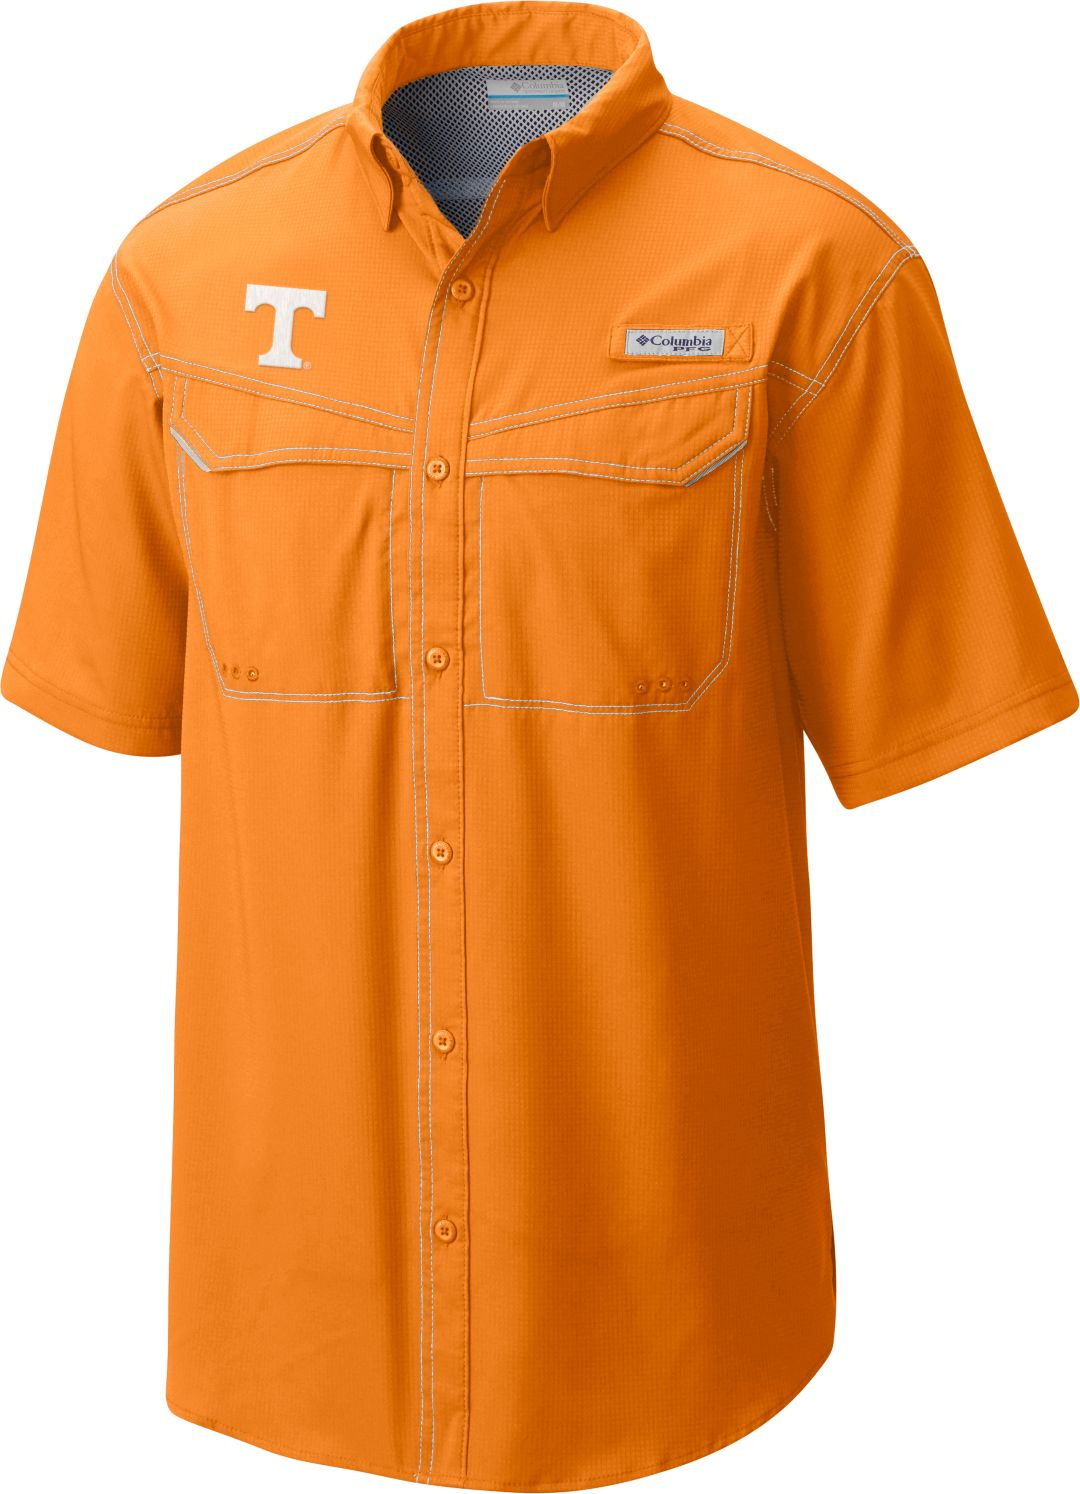 b100865d349 Columbia Men's Tennessee Volunteers Tennessee Orange Low Drag Offshore  Short Sleeve Shirt 1